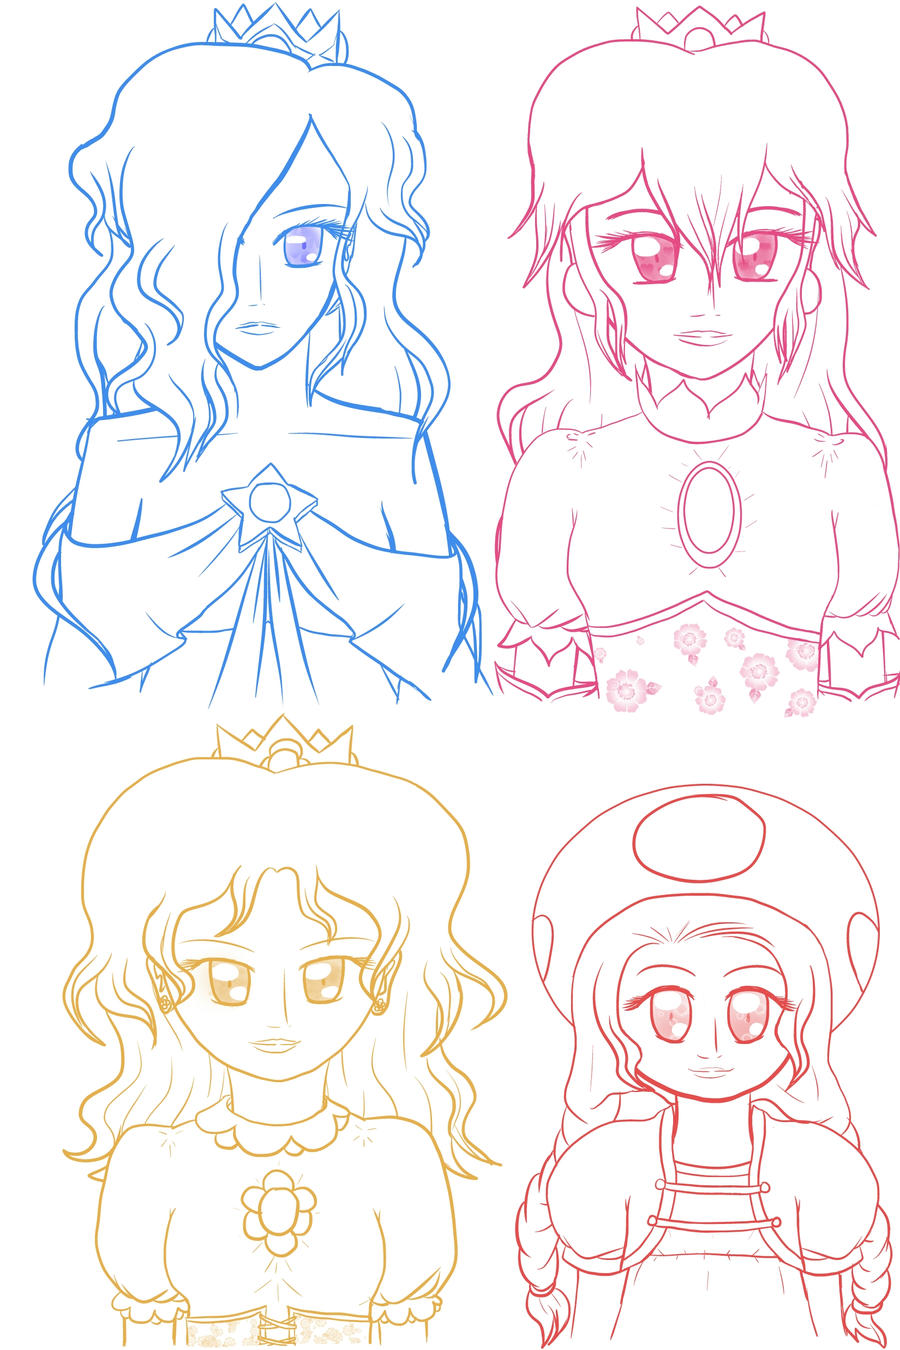 Rosalina Peach Daisy Toadette Doodles (occult-ish) by lillilotus